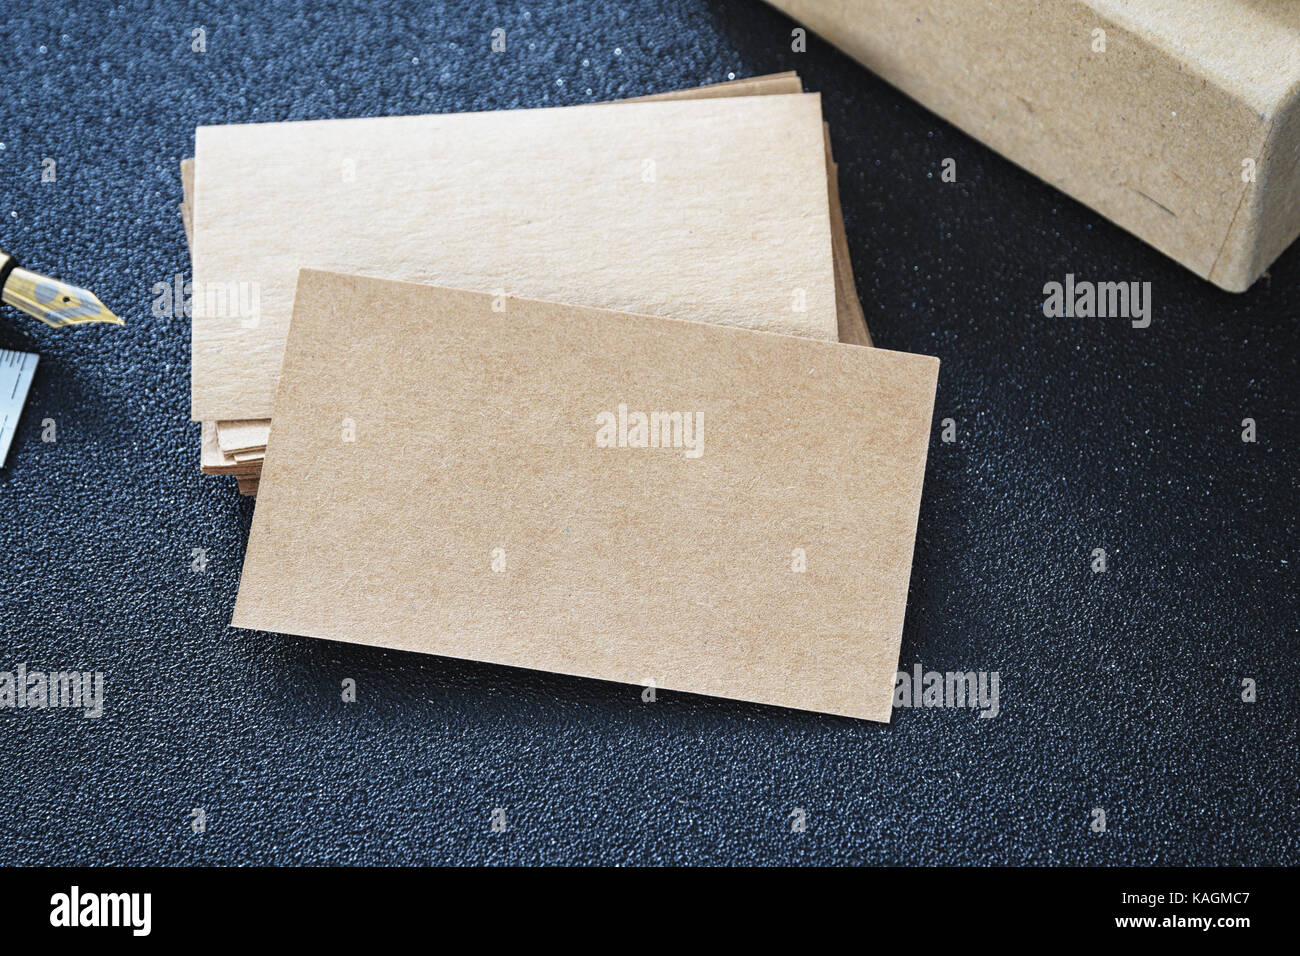 Blank business card mock up from cardboard on table for design Stock ...